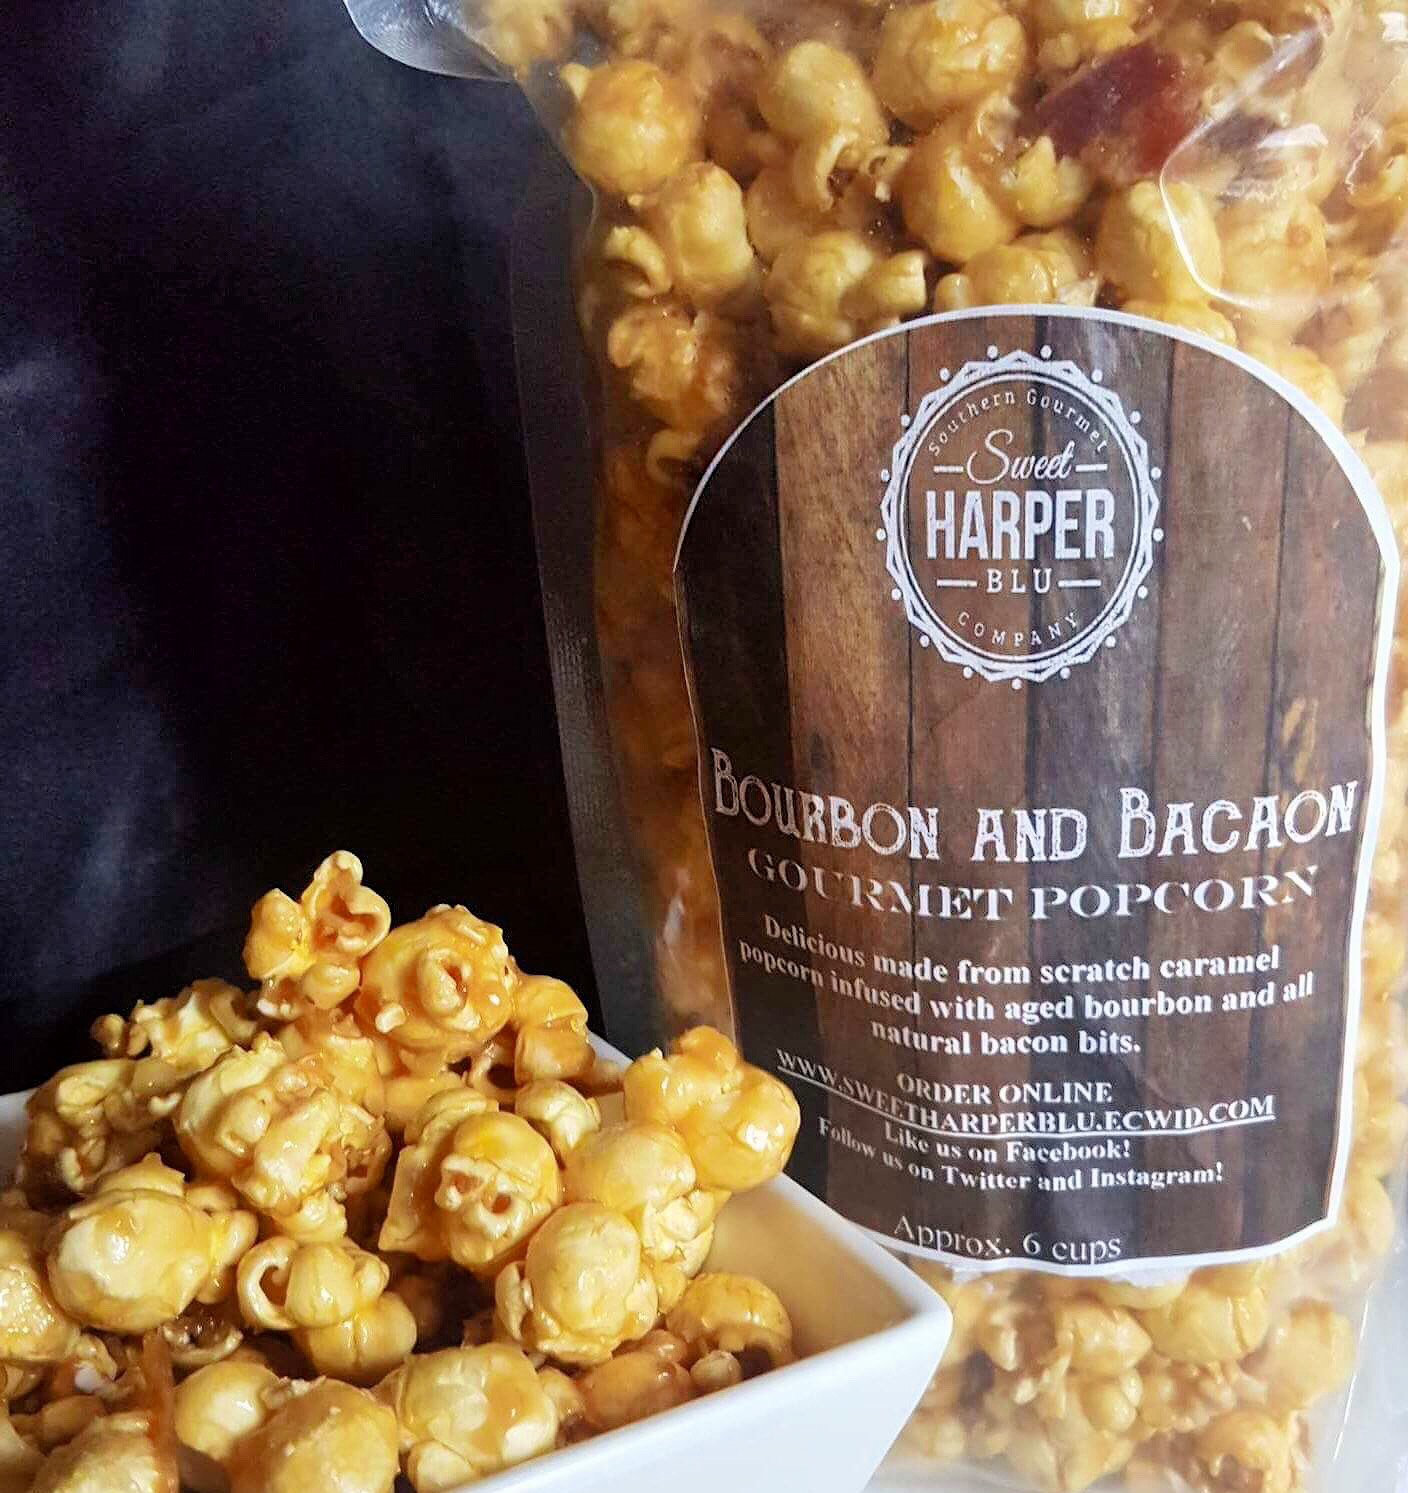 Bourbon and BACON Caramel Popcorn